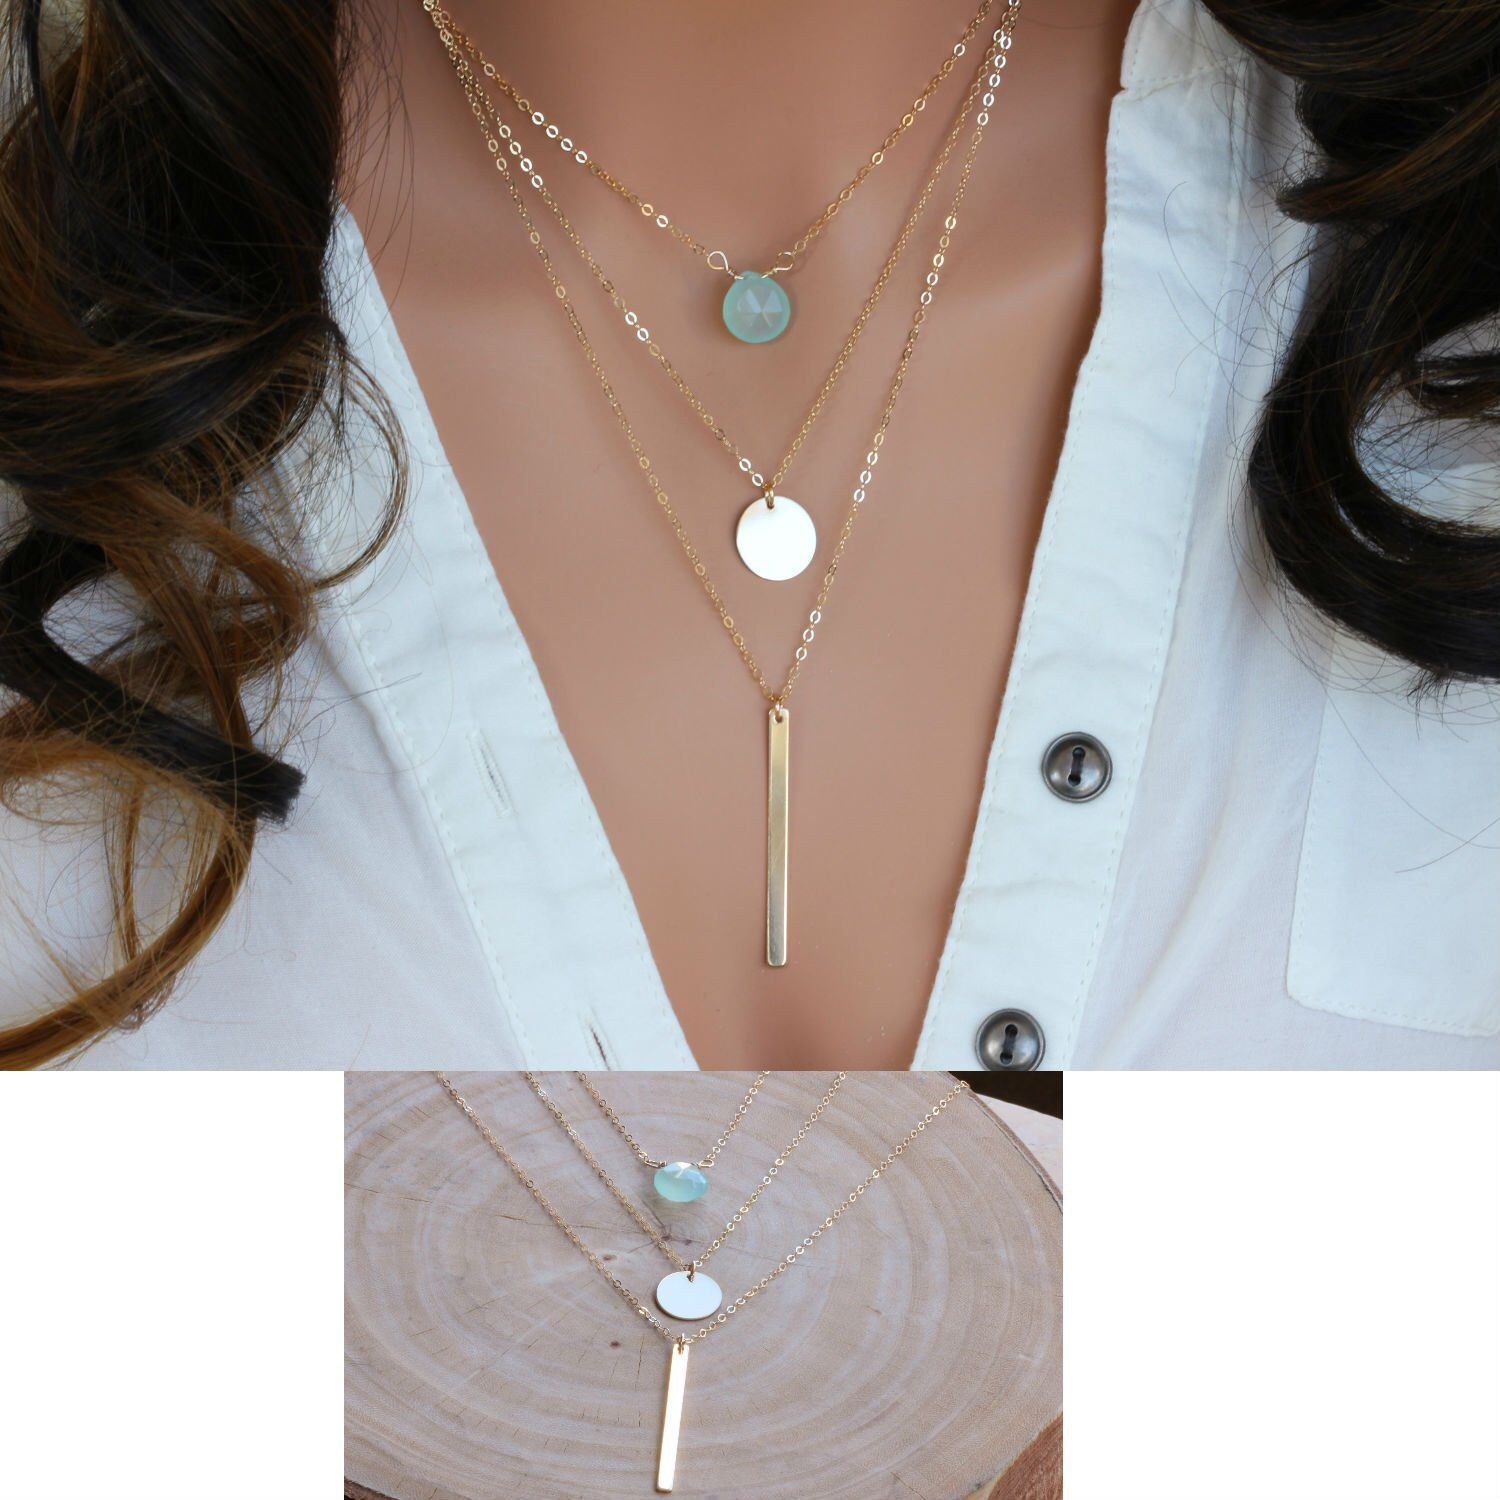 Silver  layered necklaces for women  Triple layered necklace  Multi strand Necklace is part of Layered necklace set, Gold necklace layered, Necklace set, Gold necklace, Layered necklaces, Womens necklaces - rainbowearring Thank You!!!